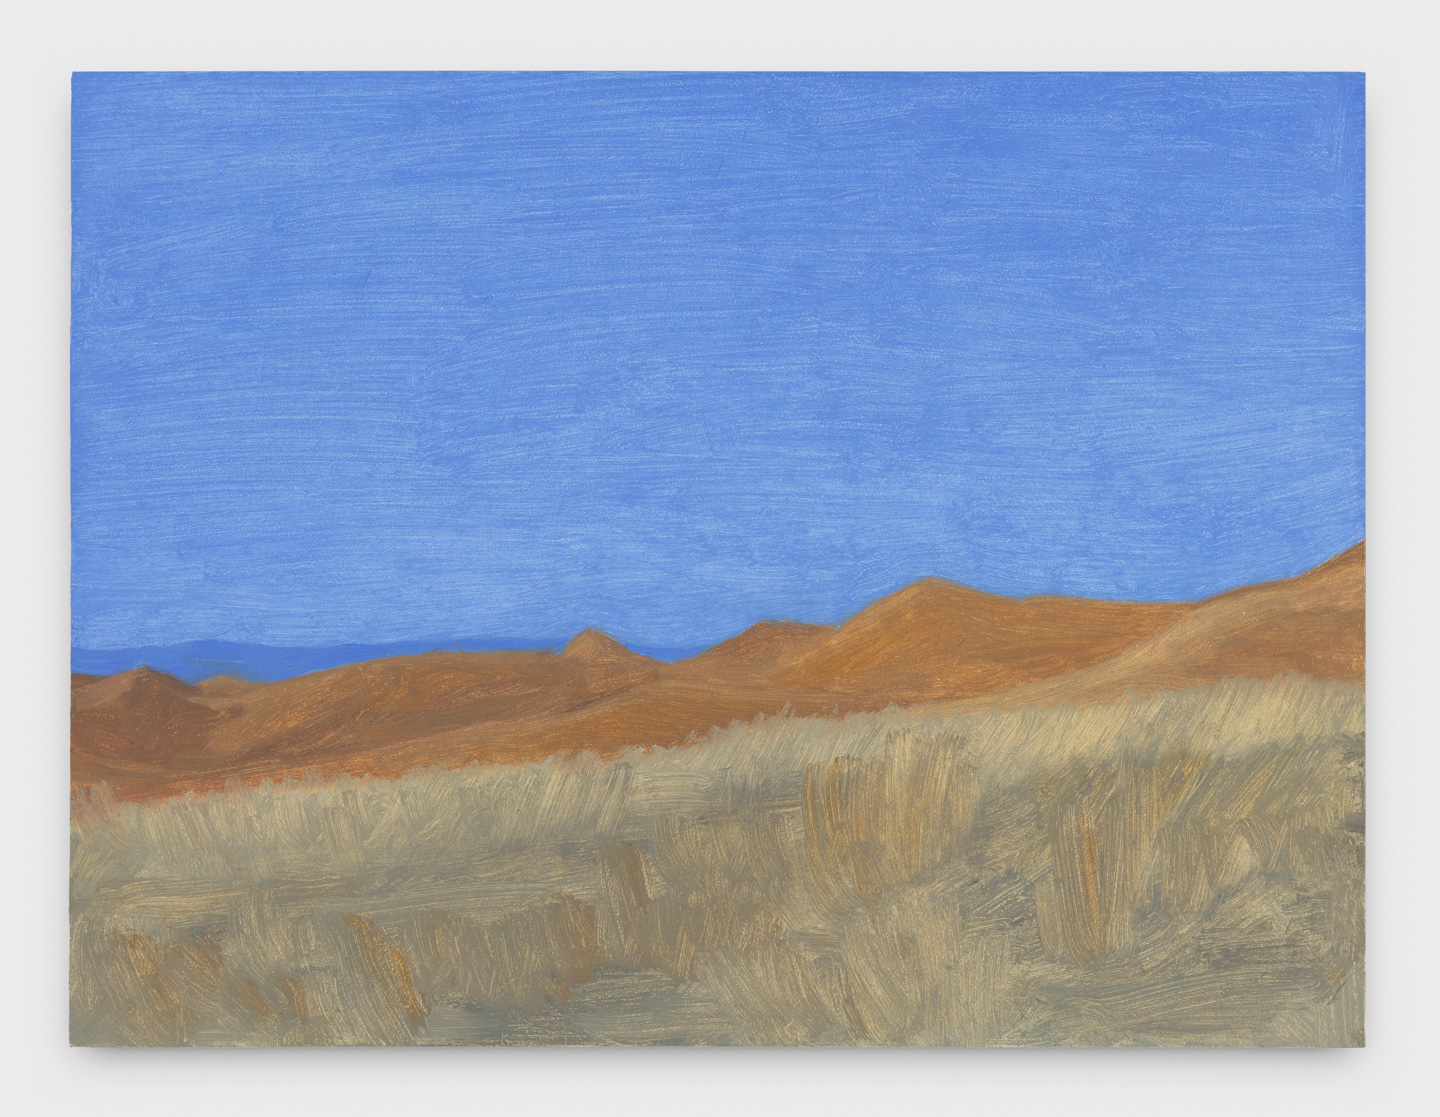 Eleanor Ray, Wyoming Hills, Dawn, 2018, oil on panel, 6.5 x 8.5 inches (courtesy of Nicelle Beauchene Gallery)